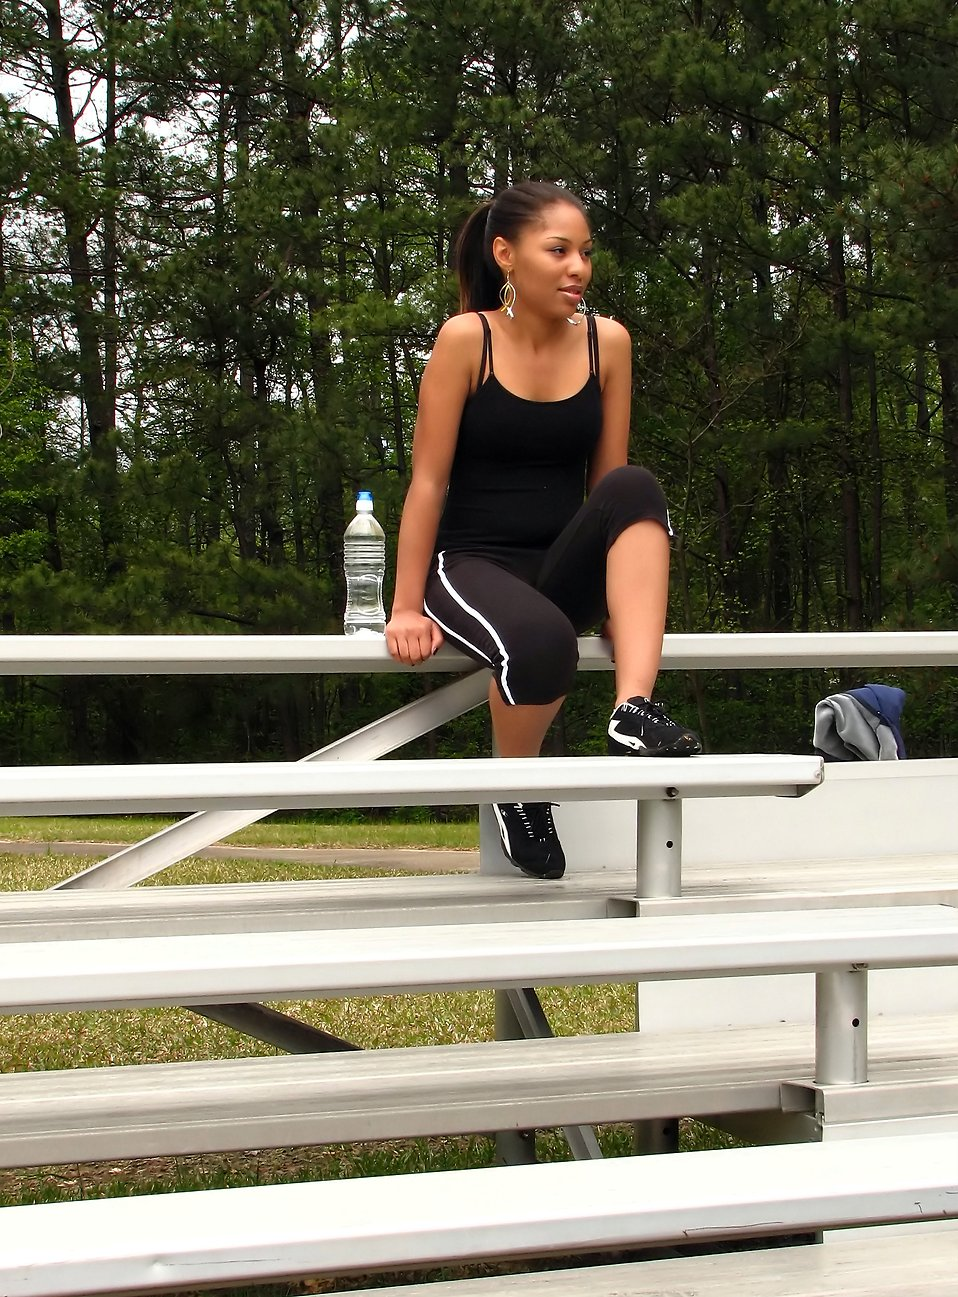 A beautiful African American teen girl sitting on bleachers with a bottle of water : Free Stock Photo